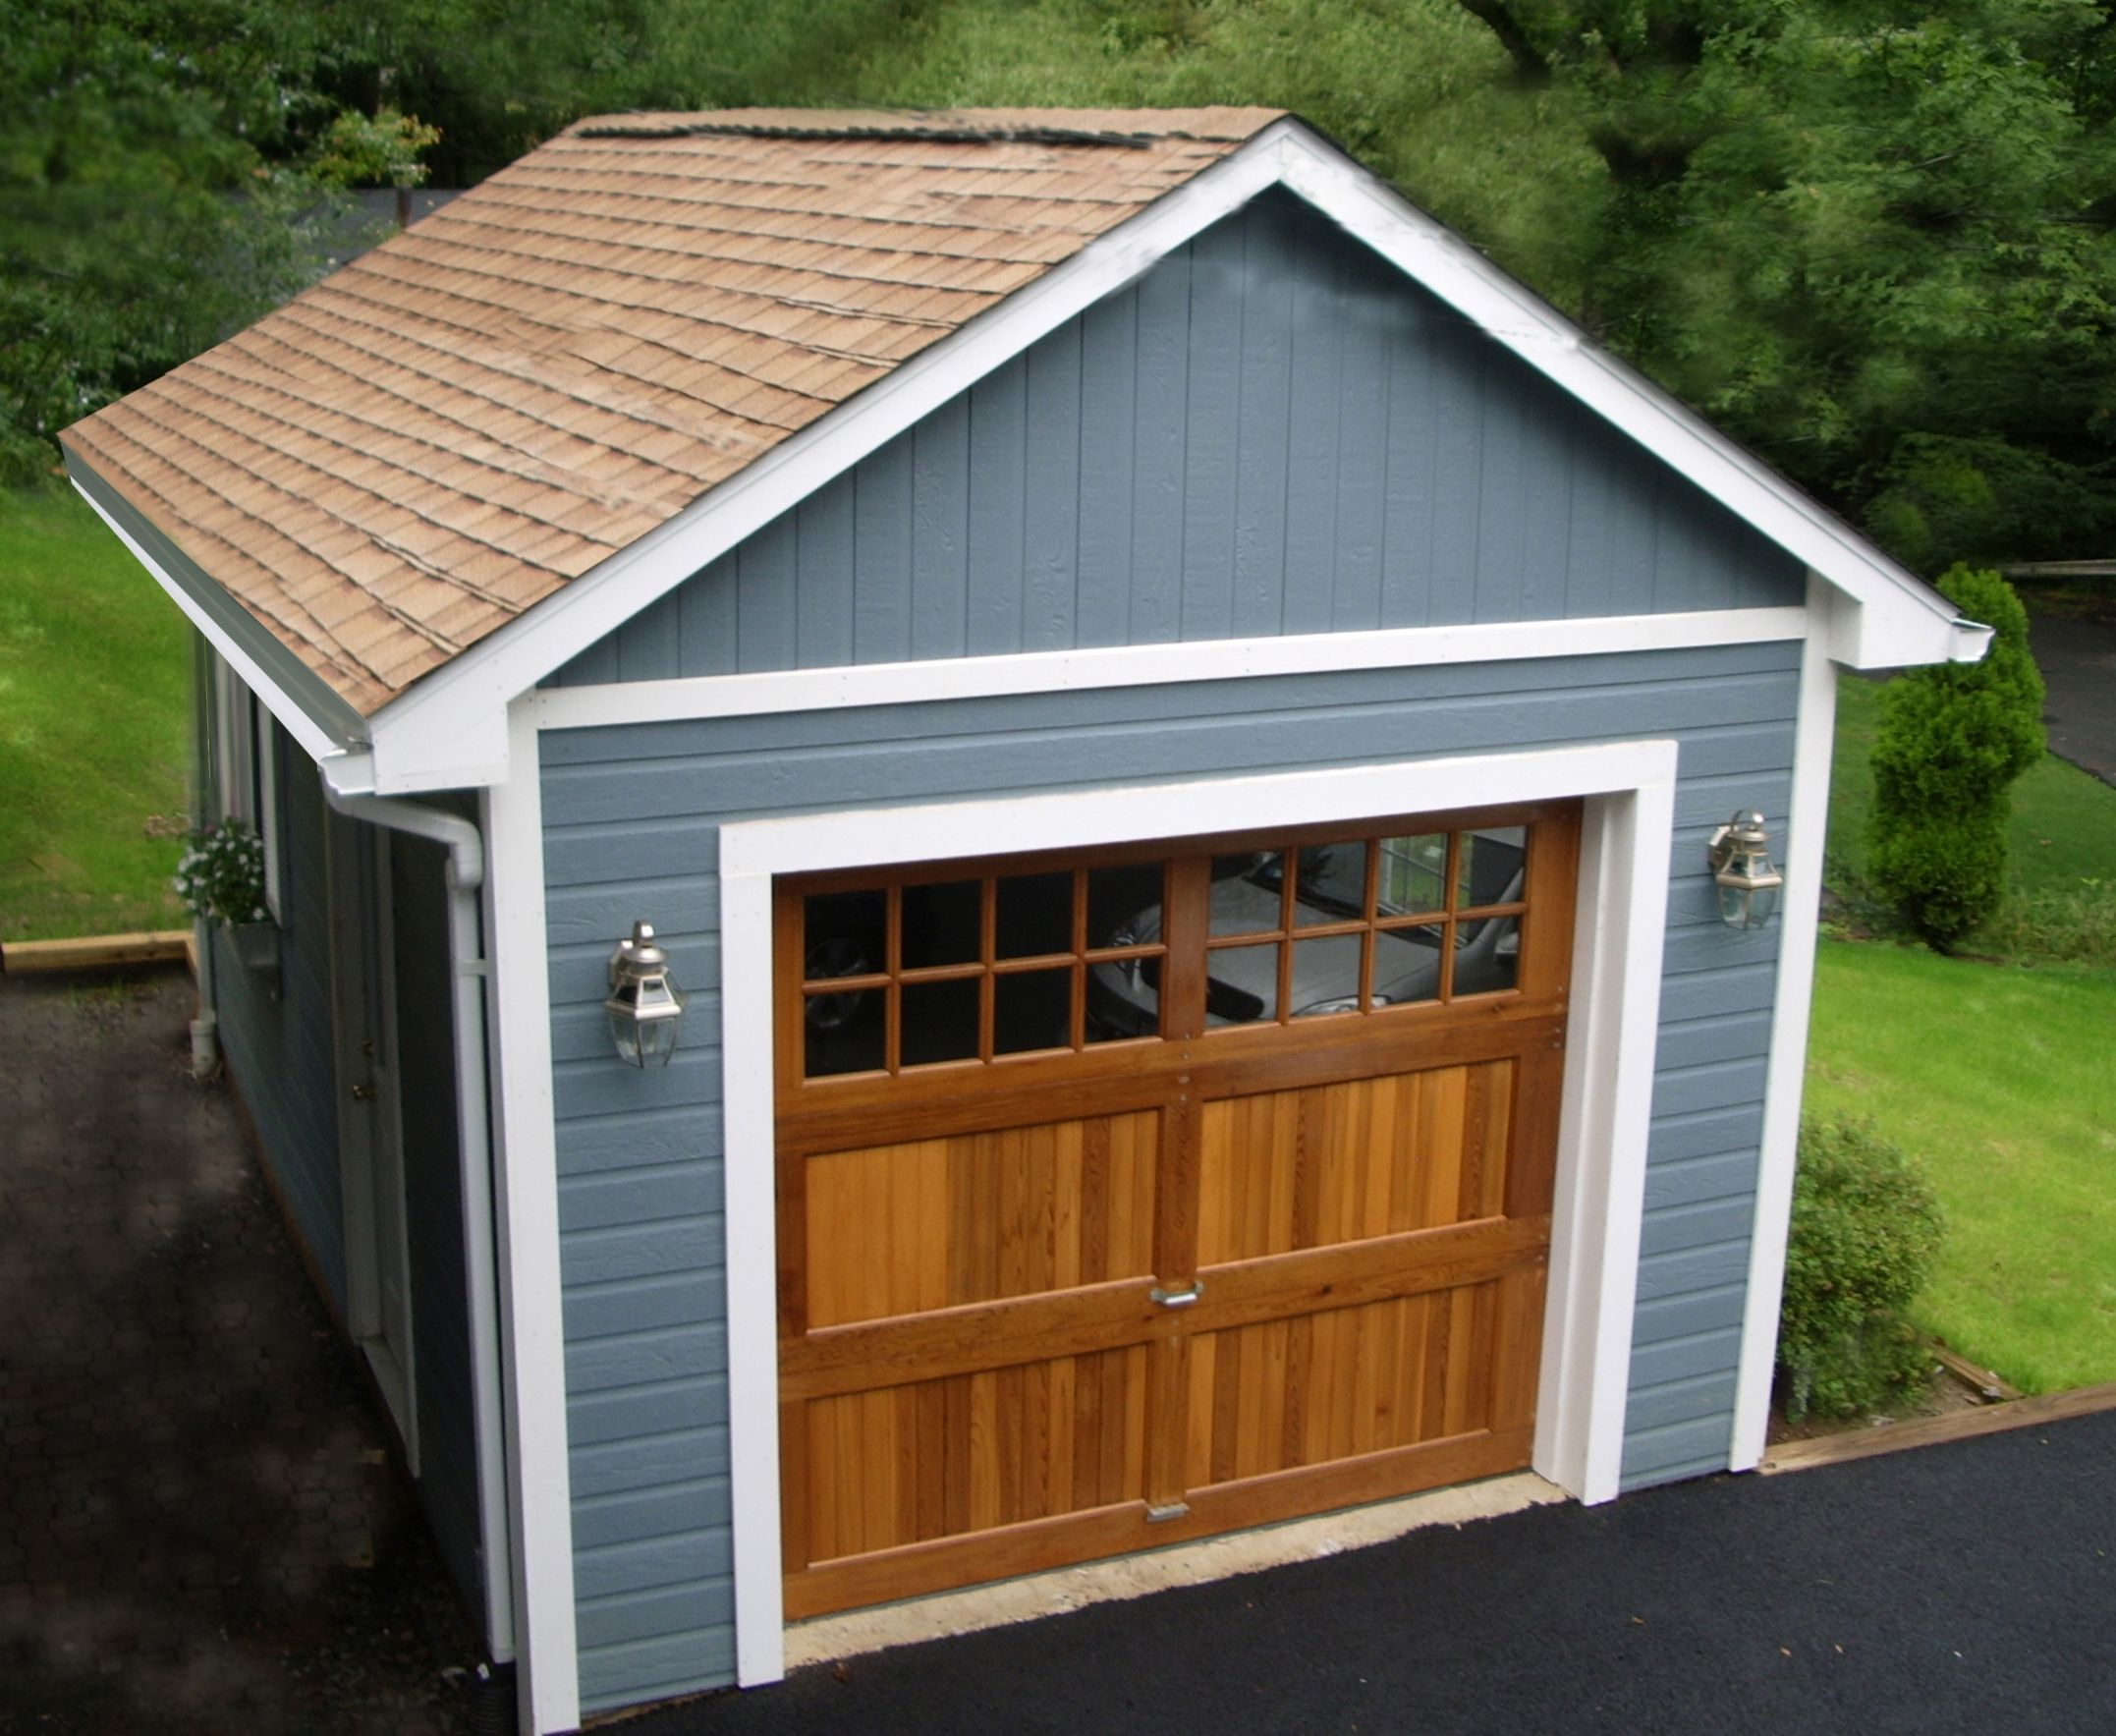 Mix and match a beautiful cedar garage